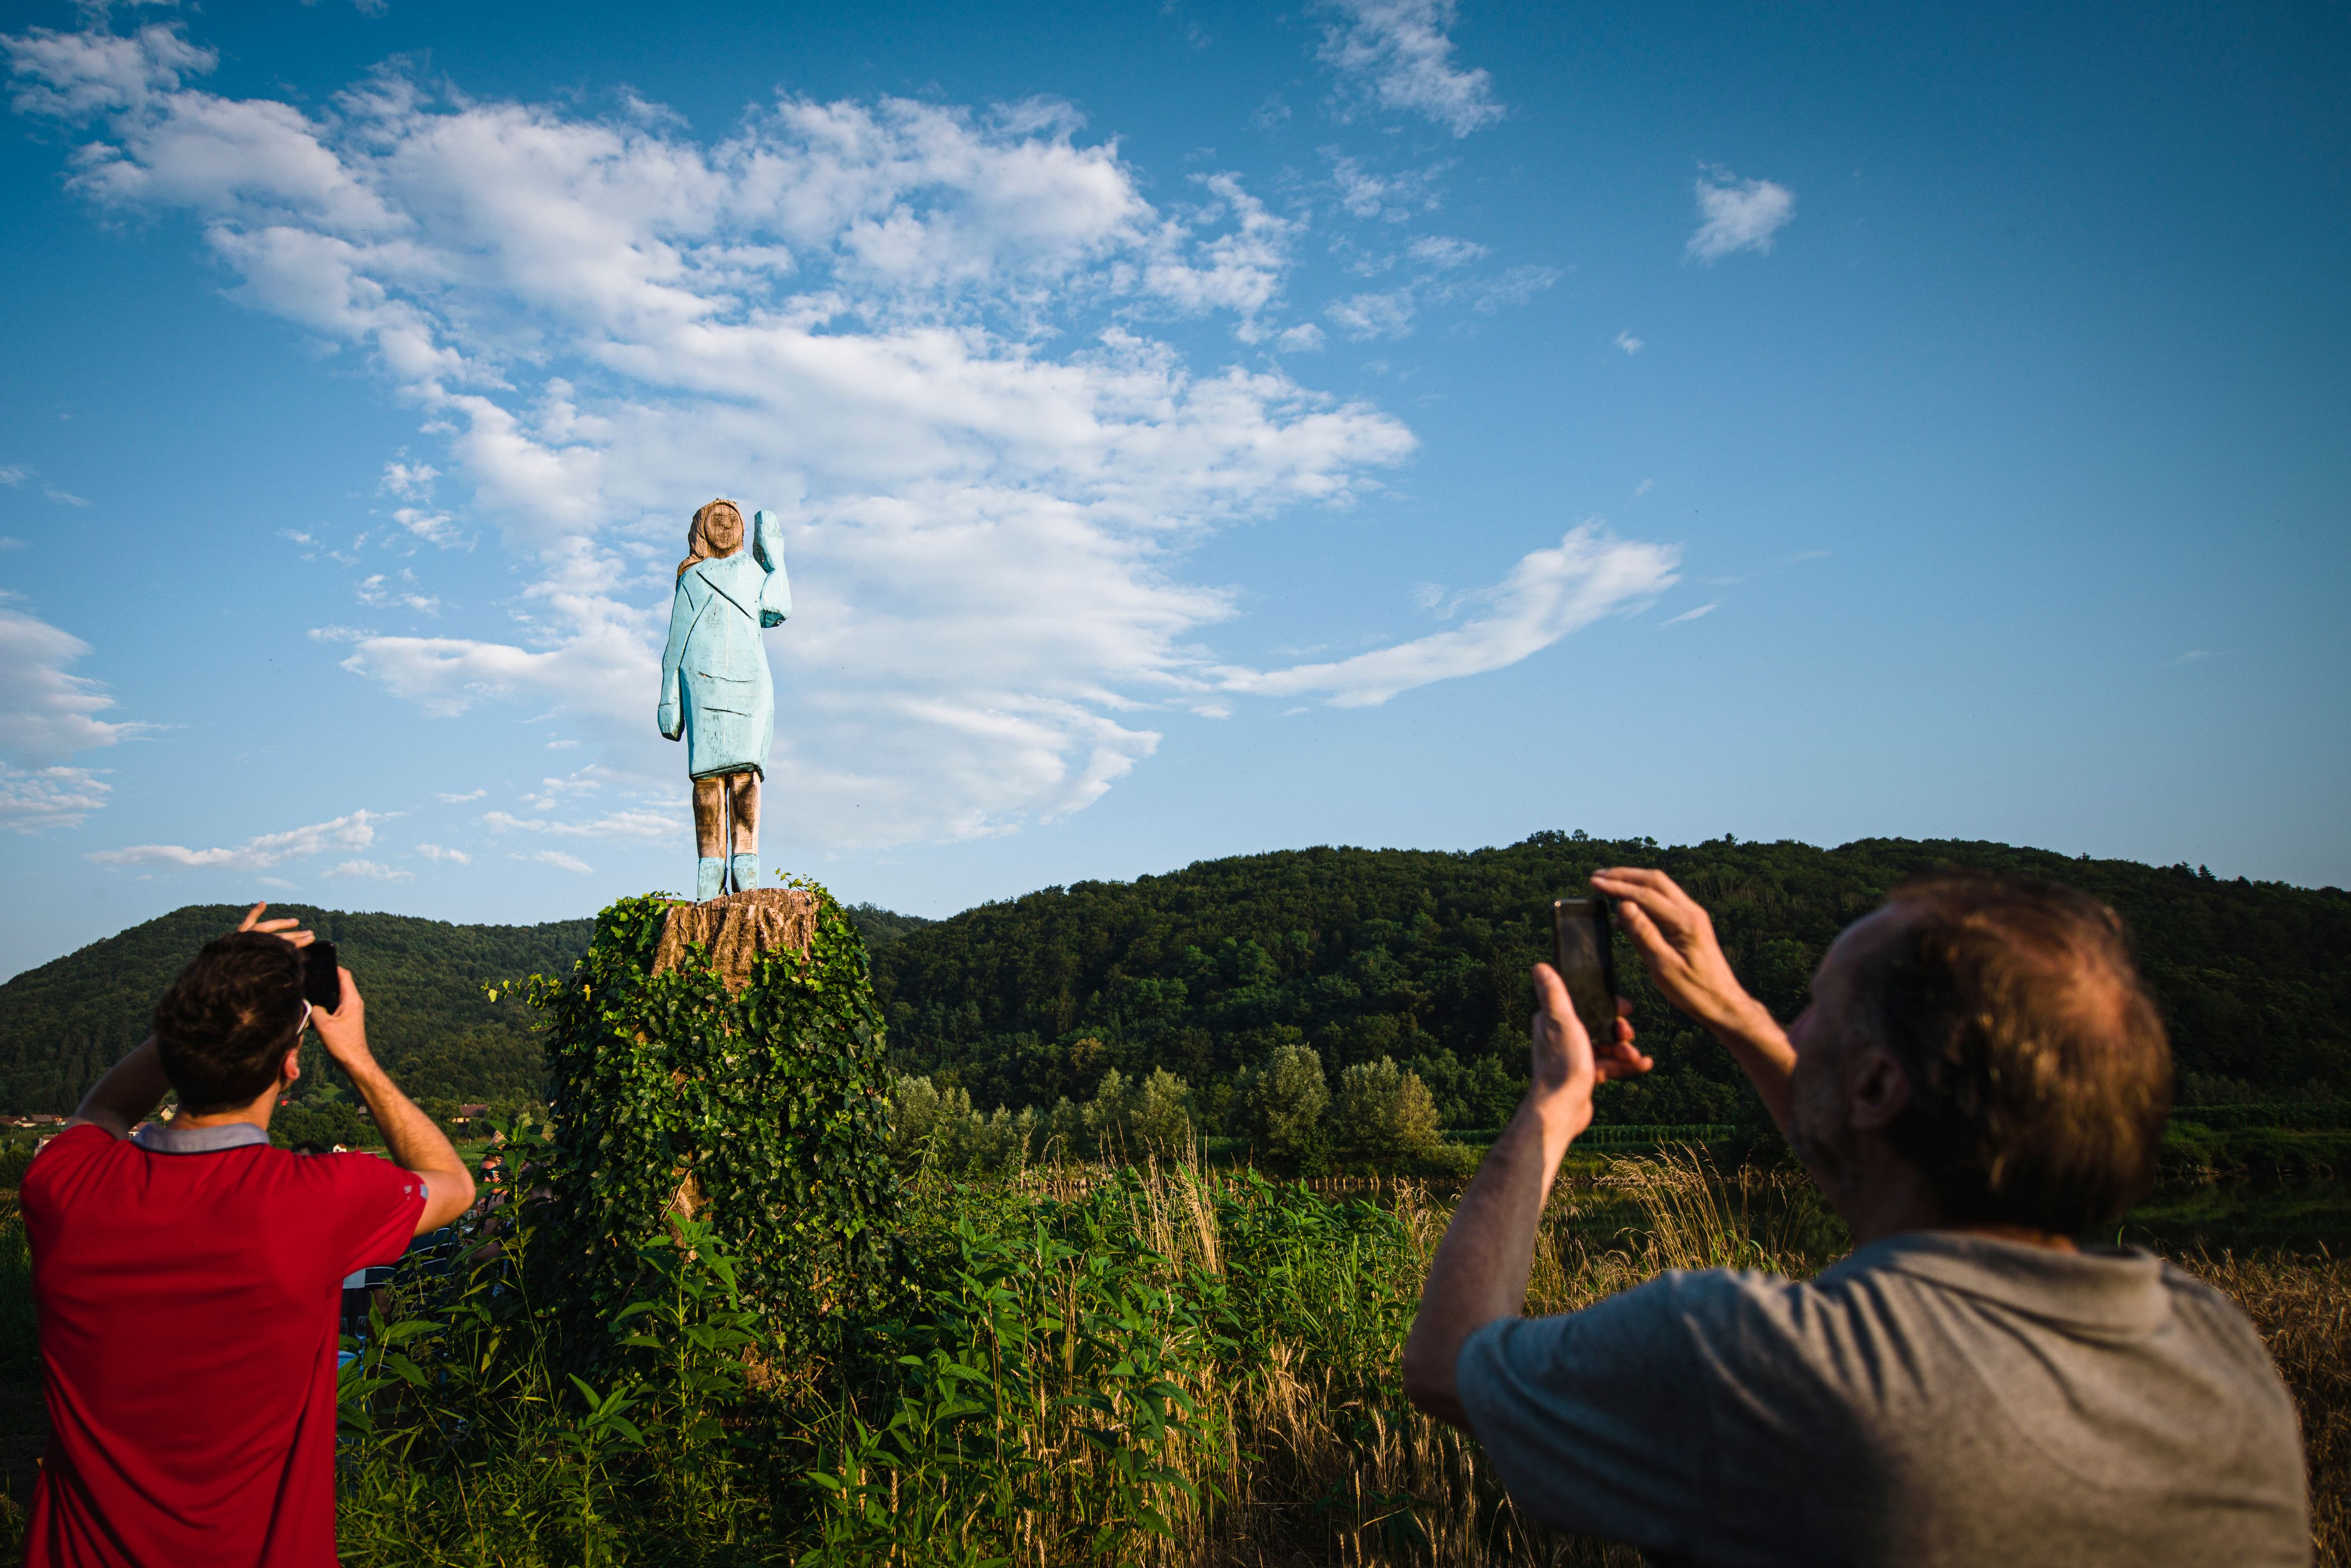 People take pictures of sculpture by conceptual artist Ales 'Maxi' Zupevc, who claims is the first ever monument of Melania Trump, set in the fields near town of Sevnica, US First Ladys hometown, during a small inauguration celebration on July 5, 2019. - After Melania cake, Melania honey, and even Melania slippers, the Slovenian hometown of the US's first lady will now boast a statue of its most famous daughter -- albeit one which has faced decidedly mixed reviews. The life-size statue on the outskirts of Sevnica was inaugurated on July 5, 2019. (Photo by Jure Makovec / AFP) / RESTRICTED TO EDITORIAL USE - MANDATORY MENTION OF THE ARTIST UPON PUBLICATION - TO ILLUSTRATE THE EVENT AS SPECIFIED IN THE CAPTION        (Photo credit should read JURE MAKOVEC/AFP/Getty Images)